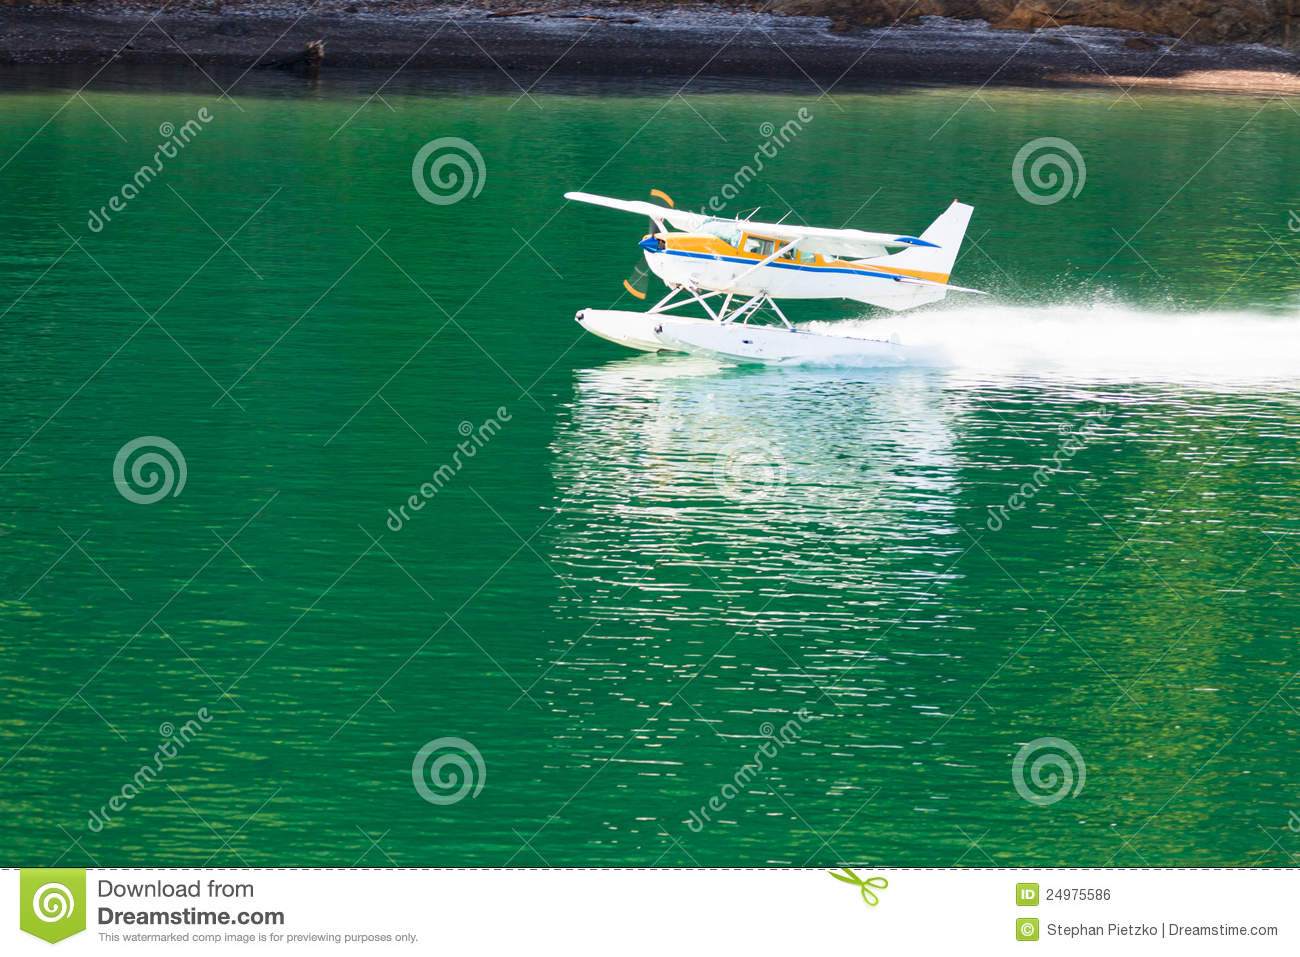 Aircraft Seaplane Taking Off On Calm Water Of Lake Royalty Free Stock